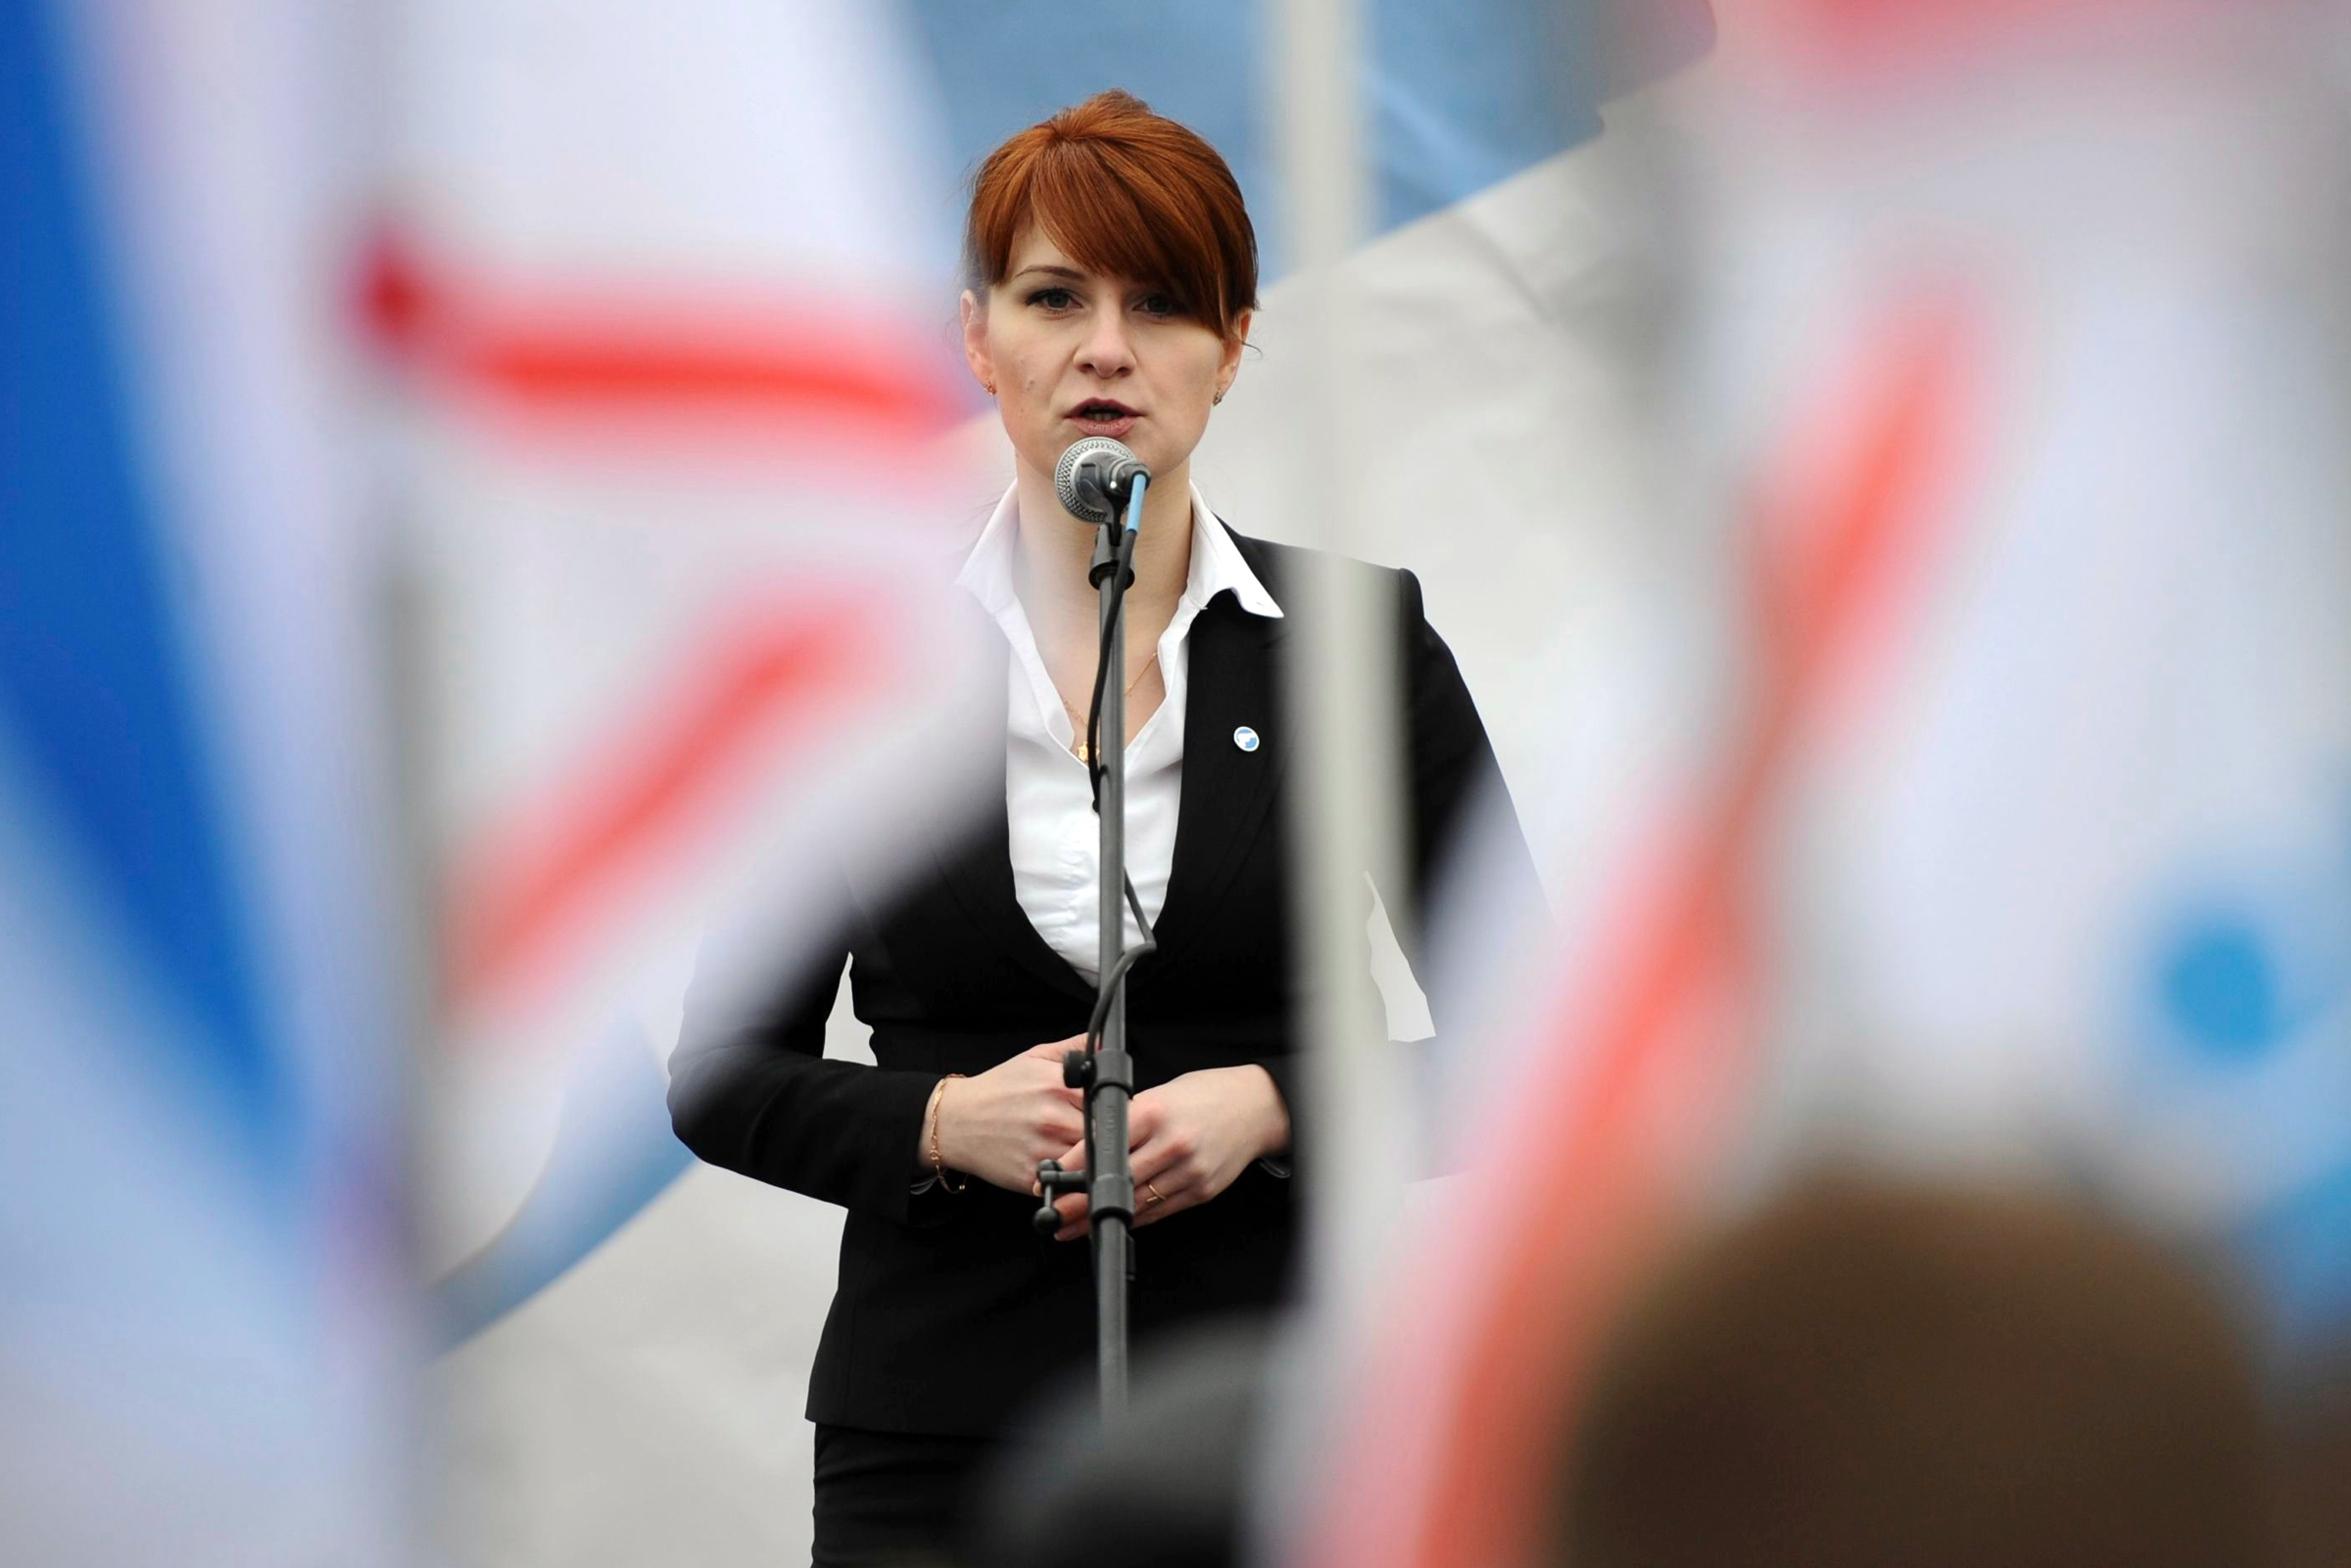 Maria Butina's Boyfriend Indicted on Money Laundering Charges